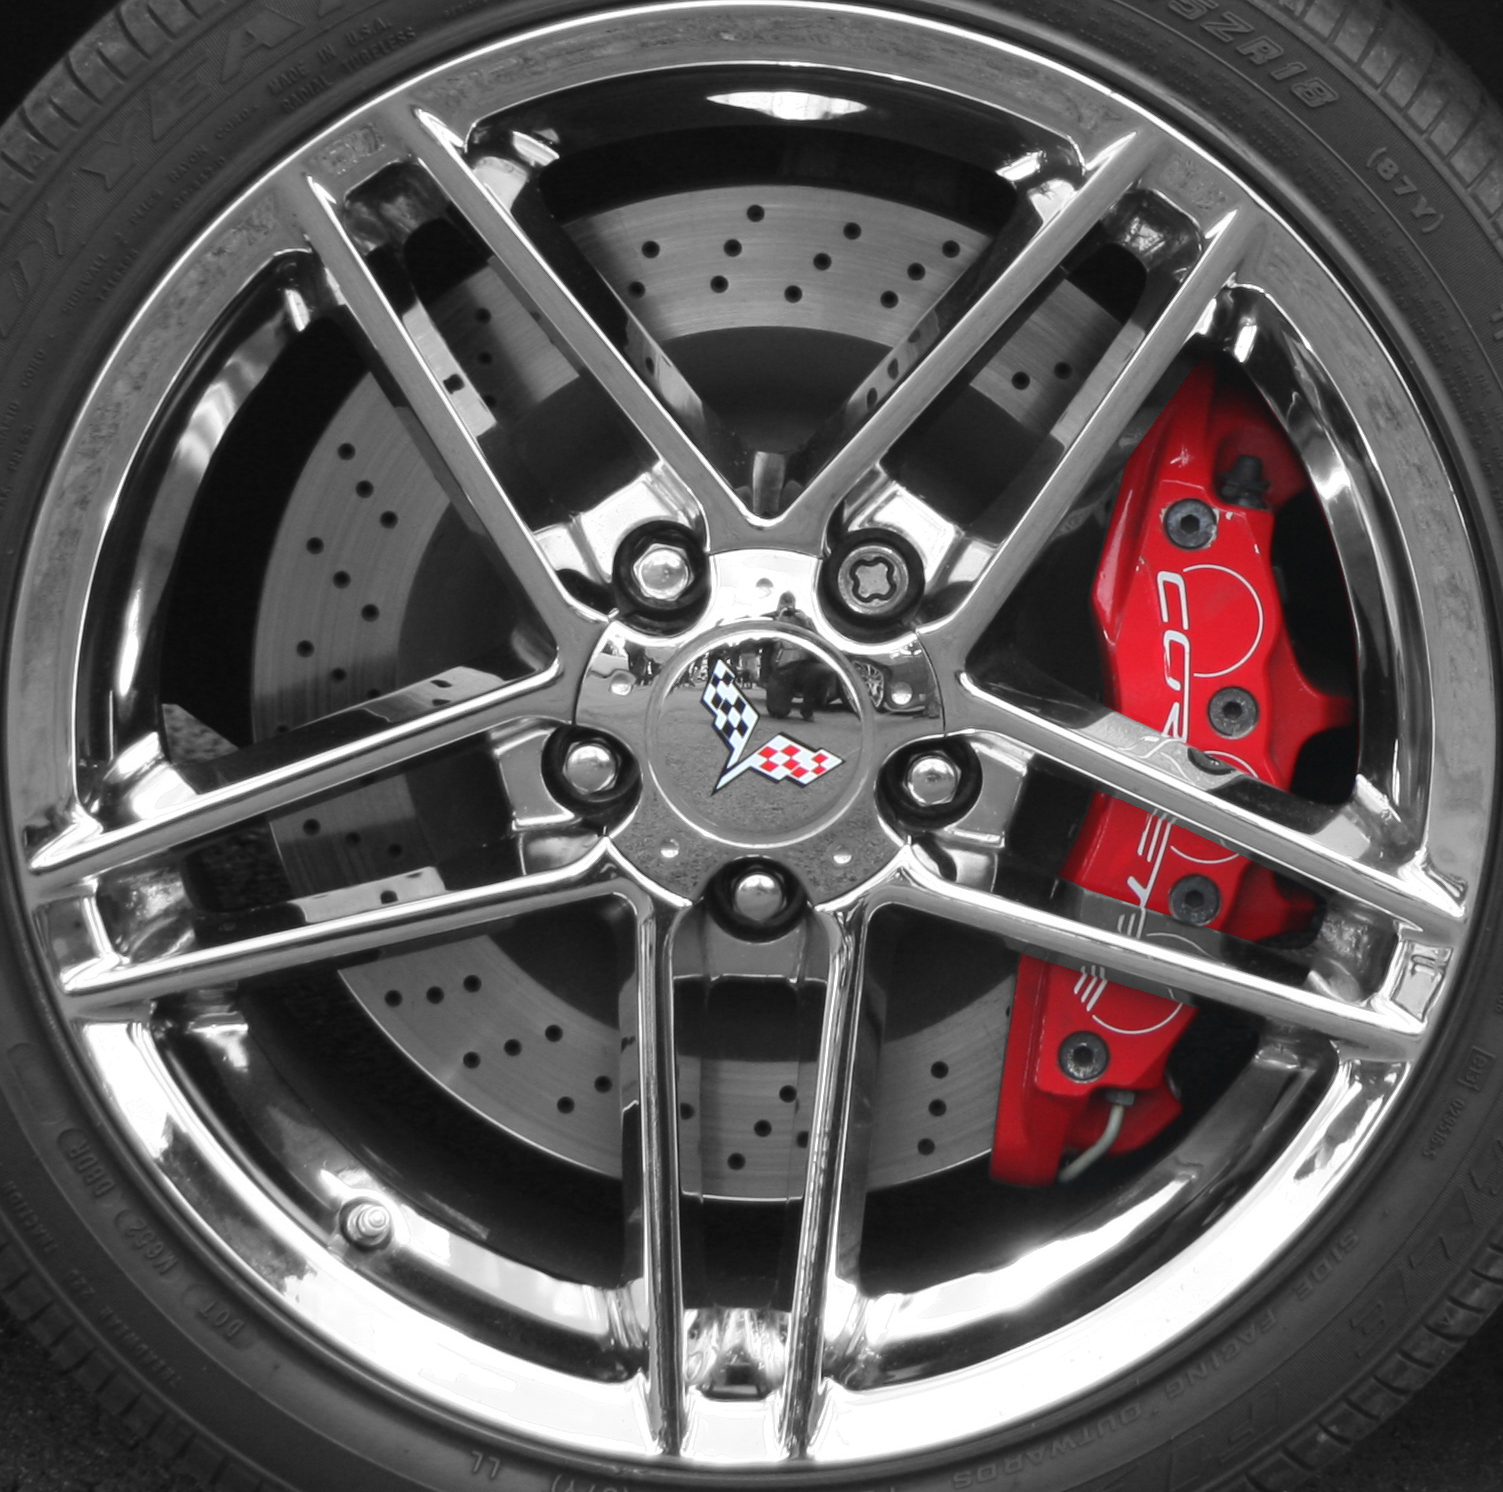 file chevrolet corvette z06 wheel flickr. Black Bedroom Furniture Sets. Home Design Ideas